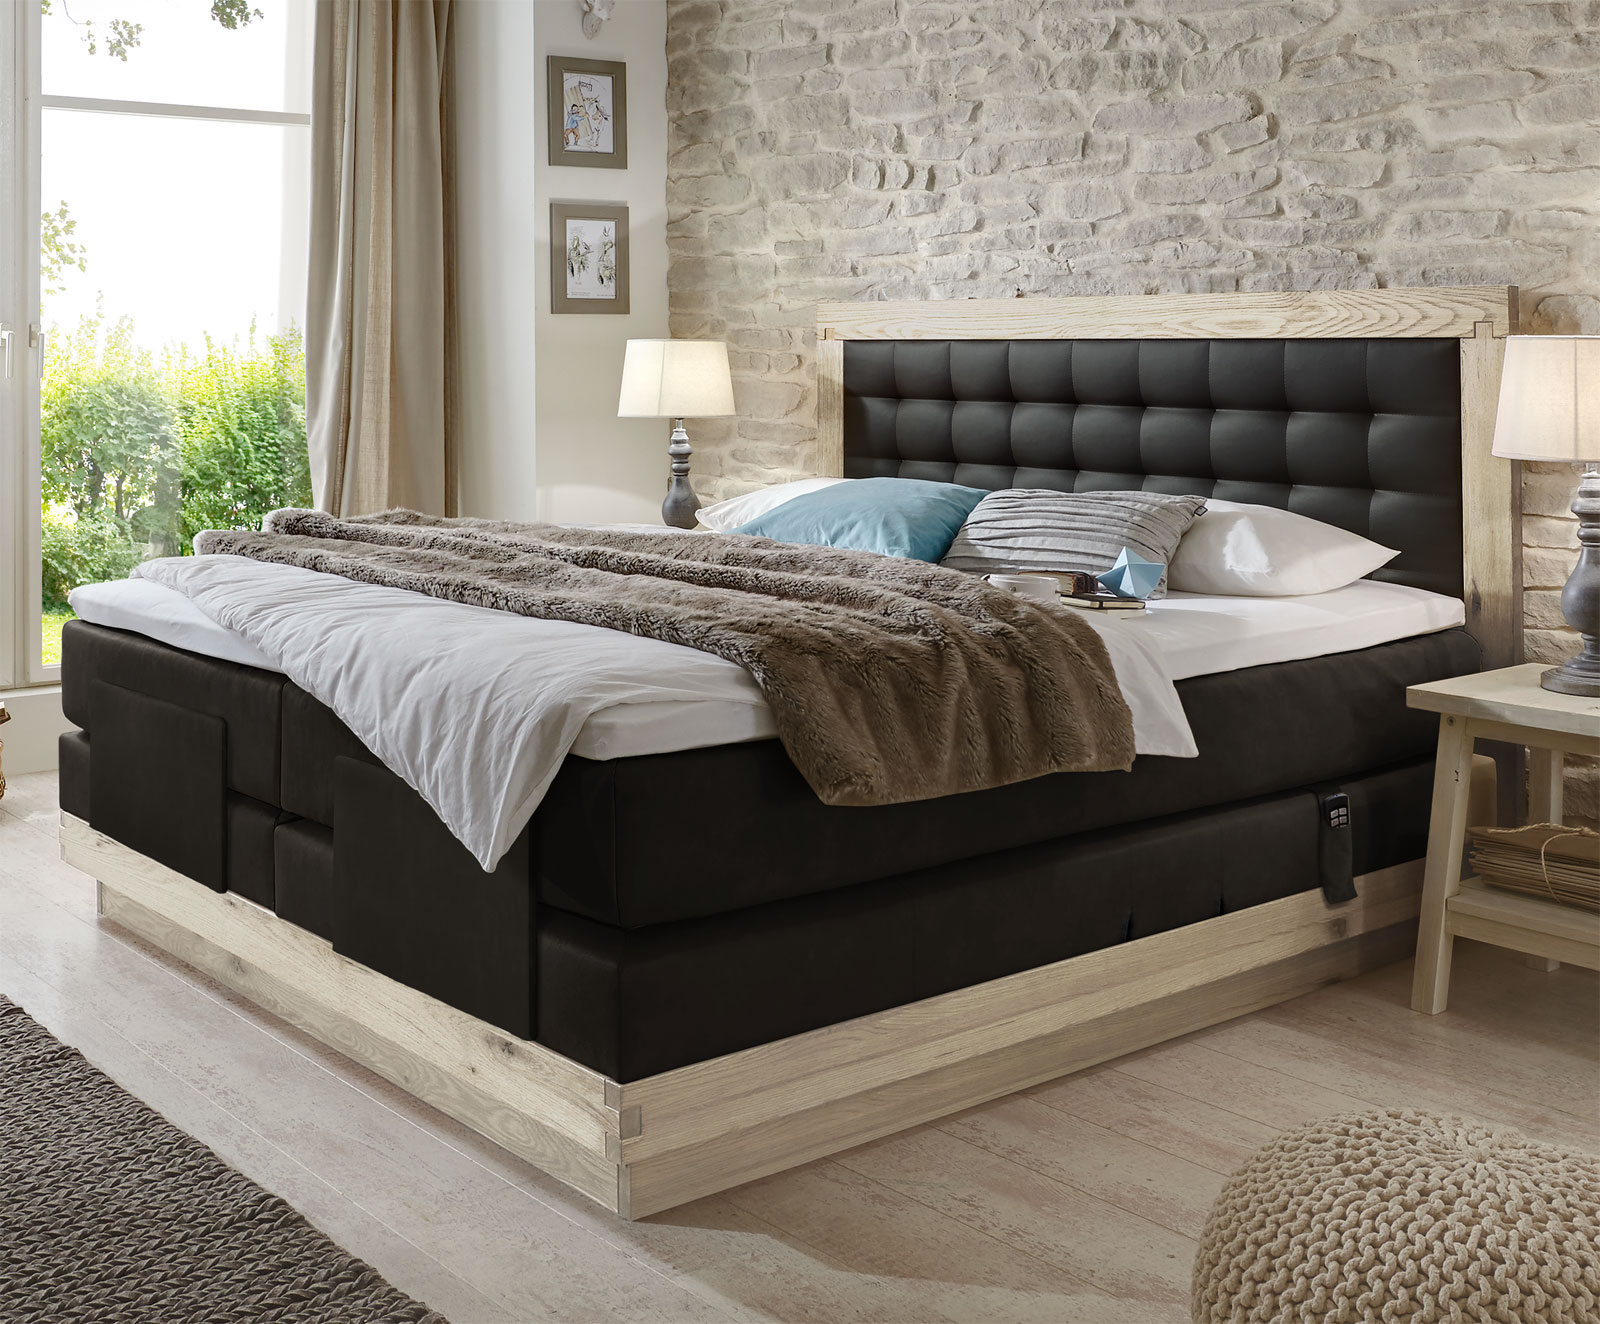 boxspringbett mit verstellbarem kopfende galicia elektro. Black Bedroom Furniture Sets. Home Design Ideas